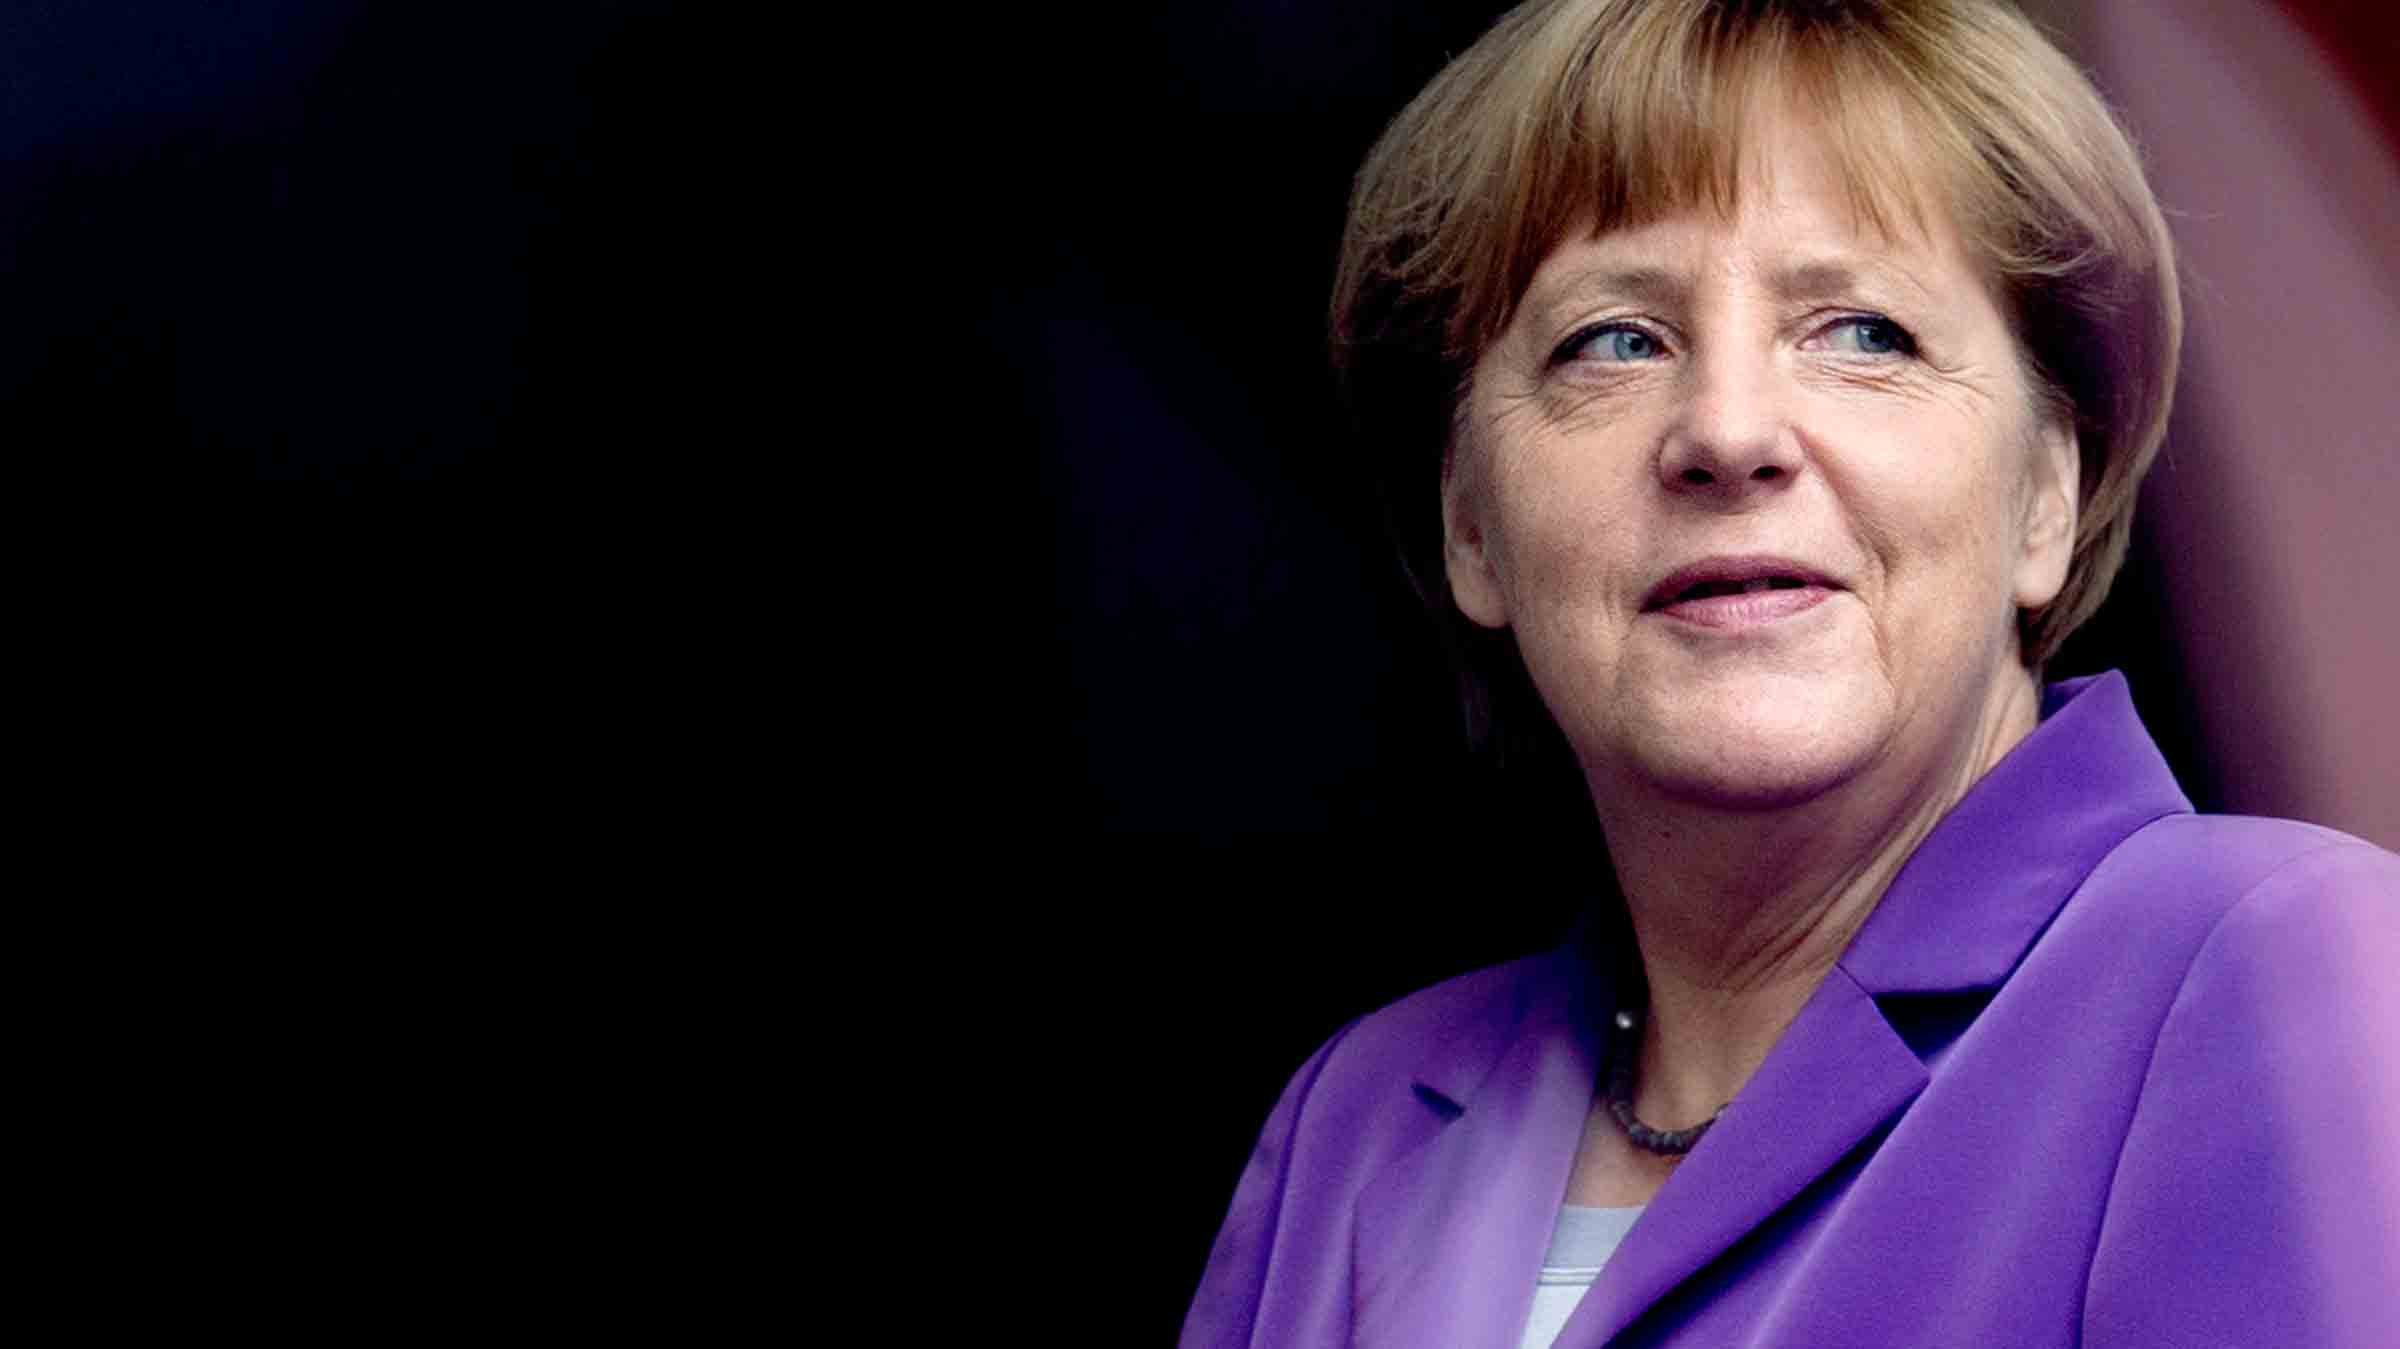 Angela Merkel eyes up fourth term as Germany's chancellor